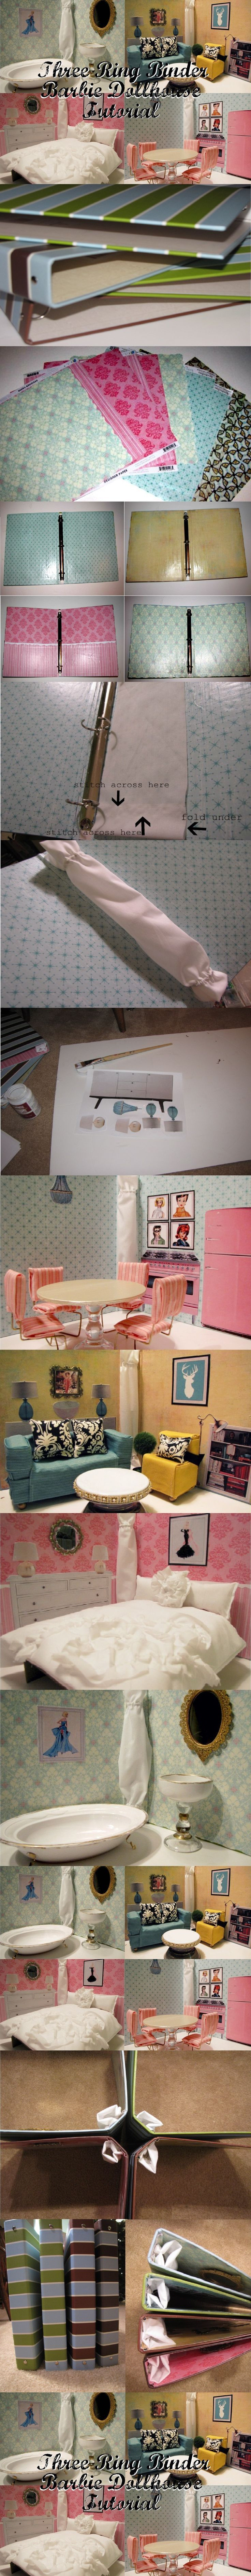 inexpensive dollhouse furniture. Three Ring Binder Barbie Doll House - Inexpensive, Compact, Cute! I Like This Idea But For My Son To Create Different Boyish Scene Backgrounds For\u2026 Inexpensive Dollhouse Furniture